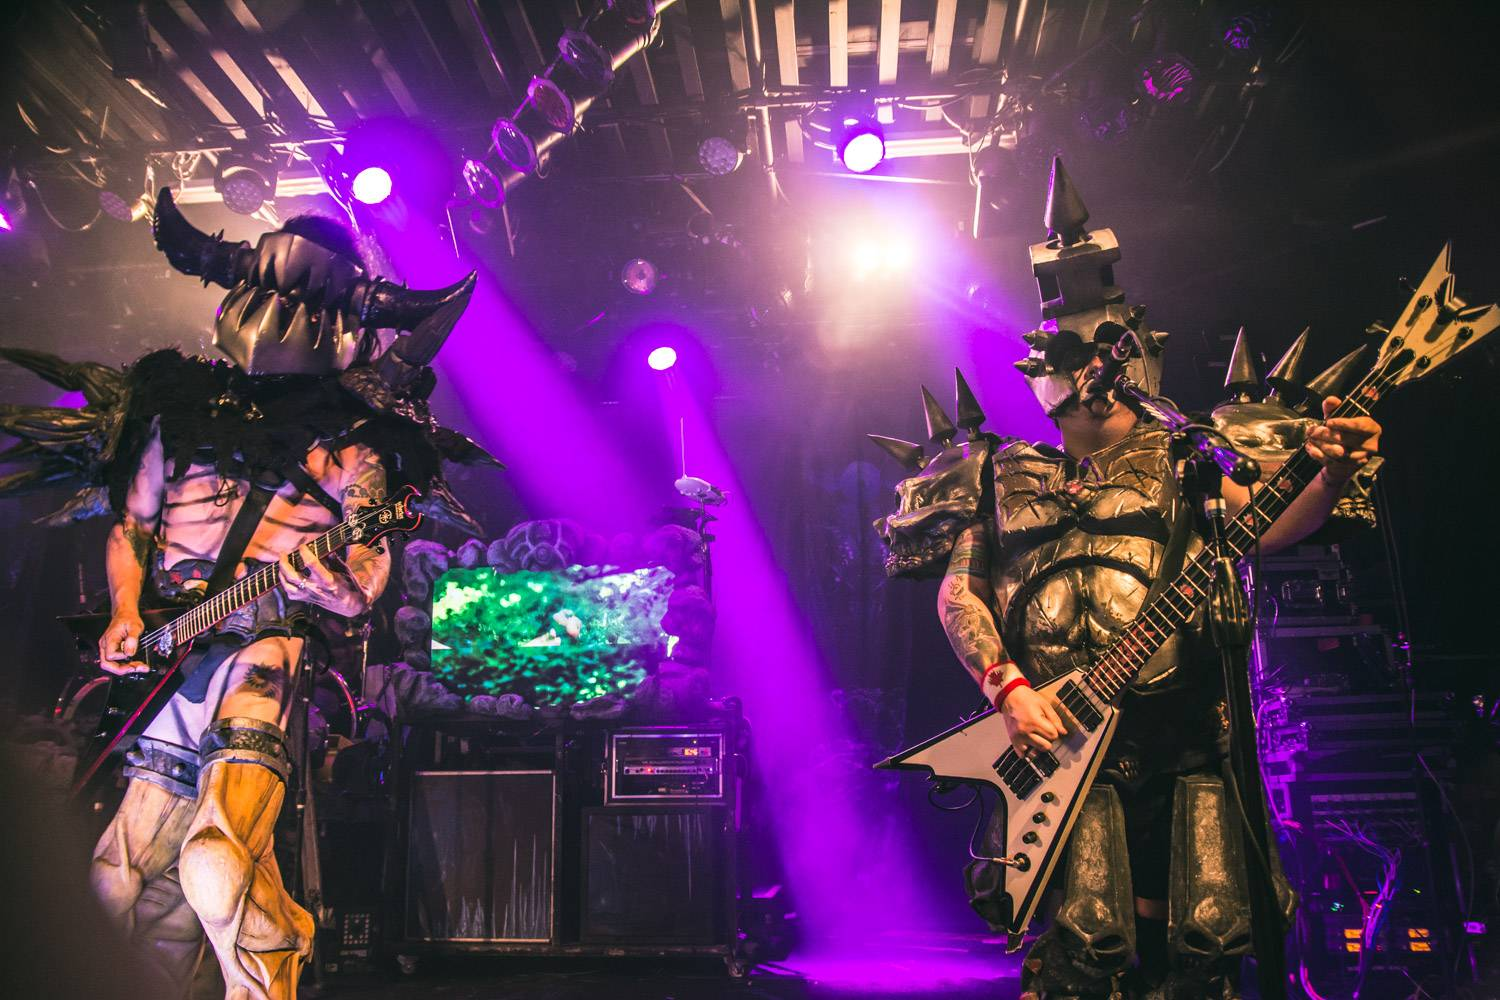 Gwar at the Commodore Ballroom, Vancouver, Oct 16 2015. Pavel Boiko photo.